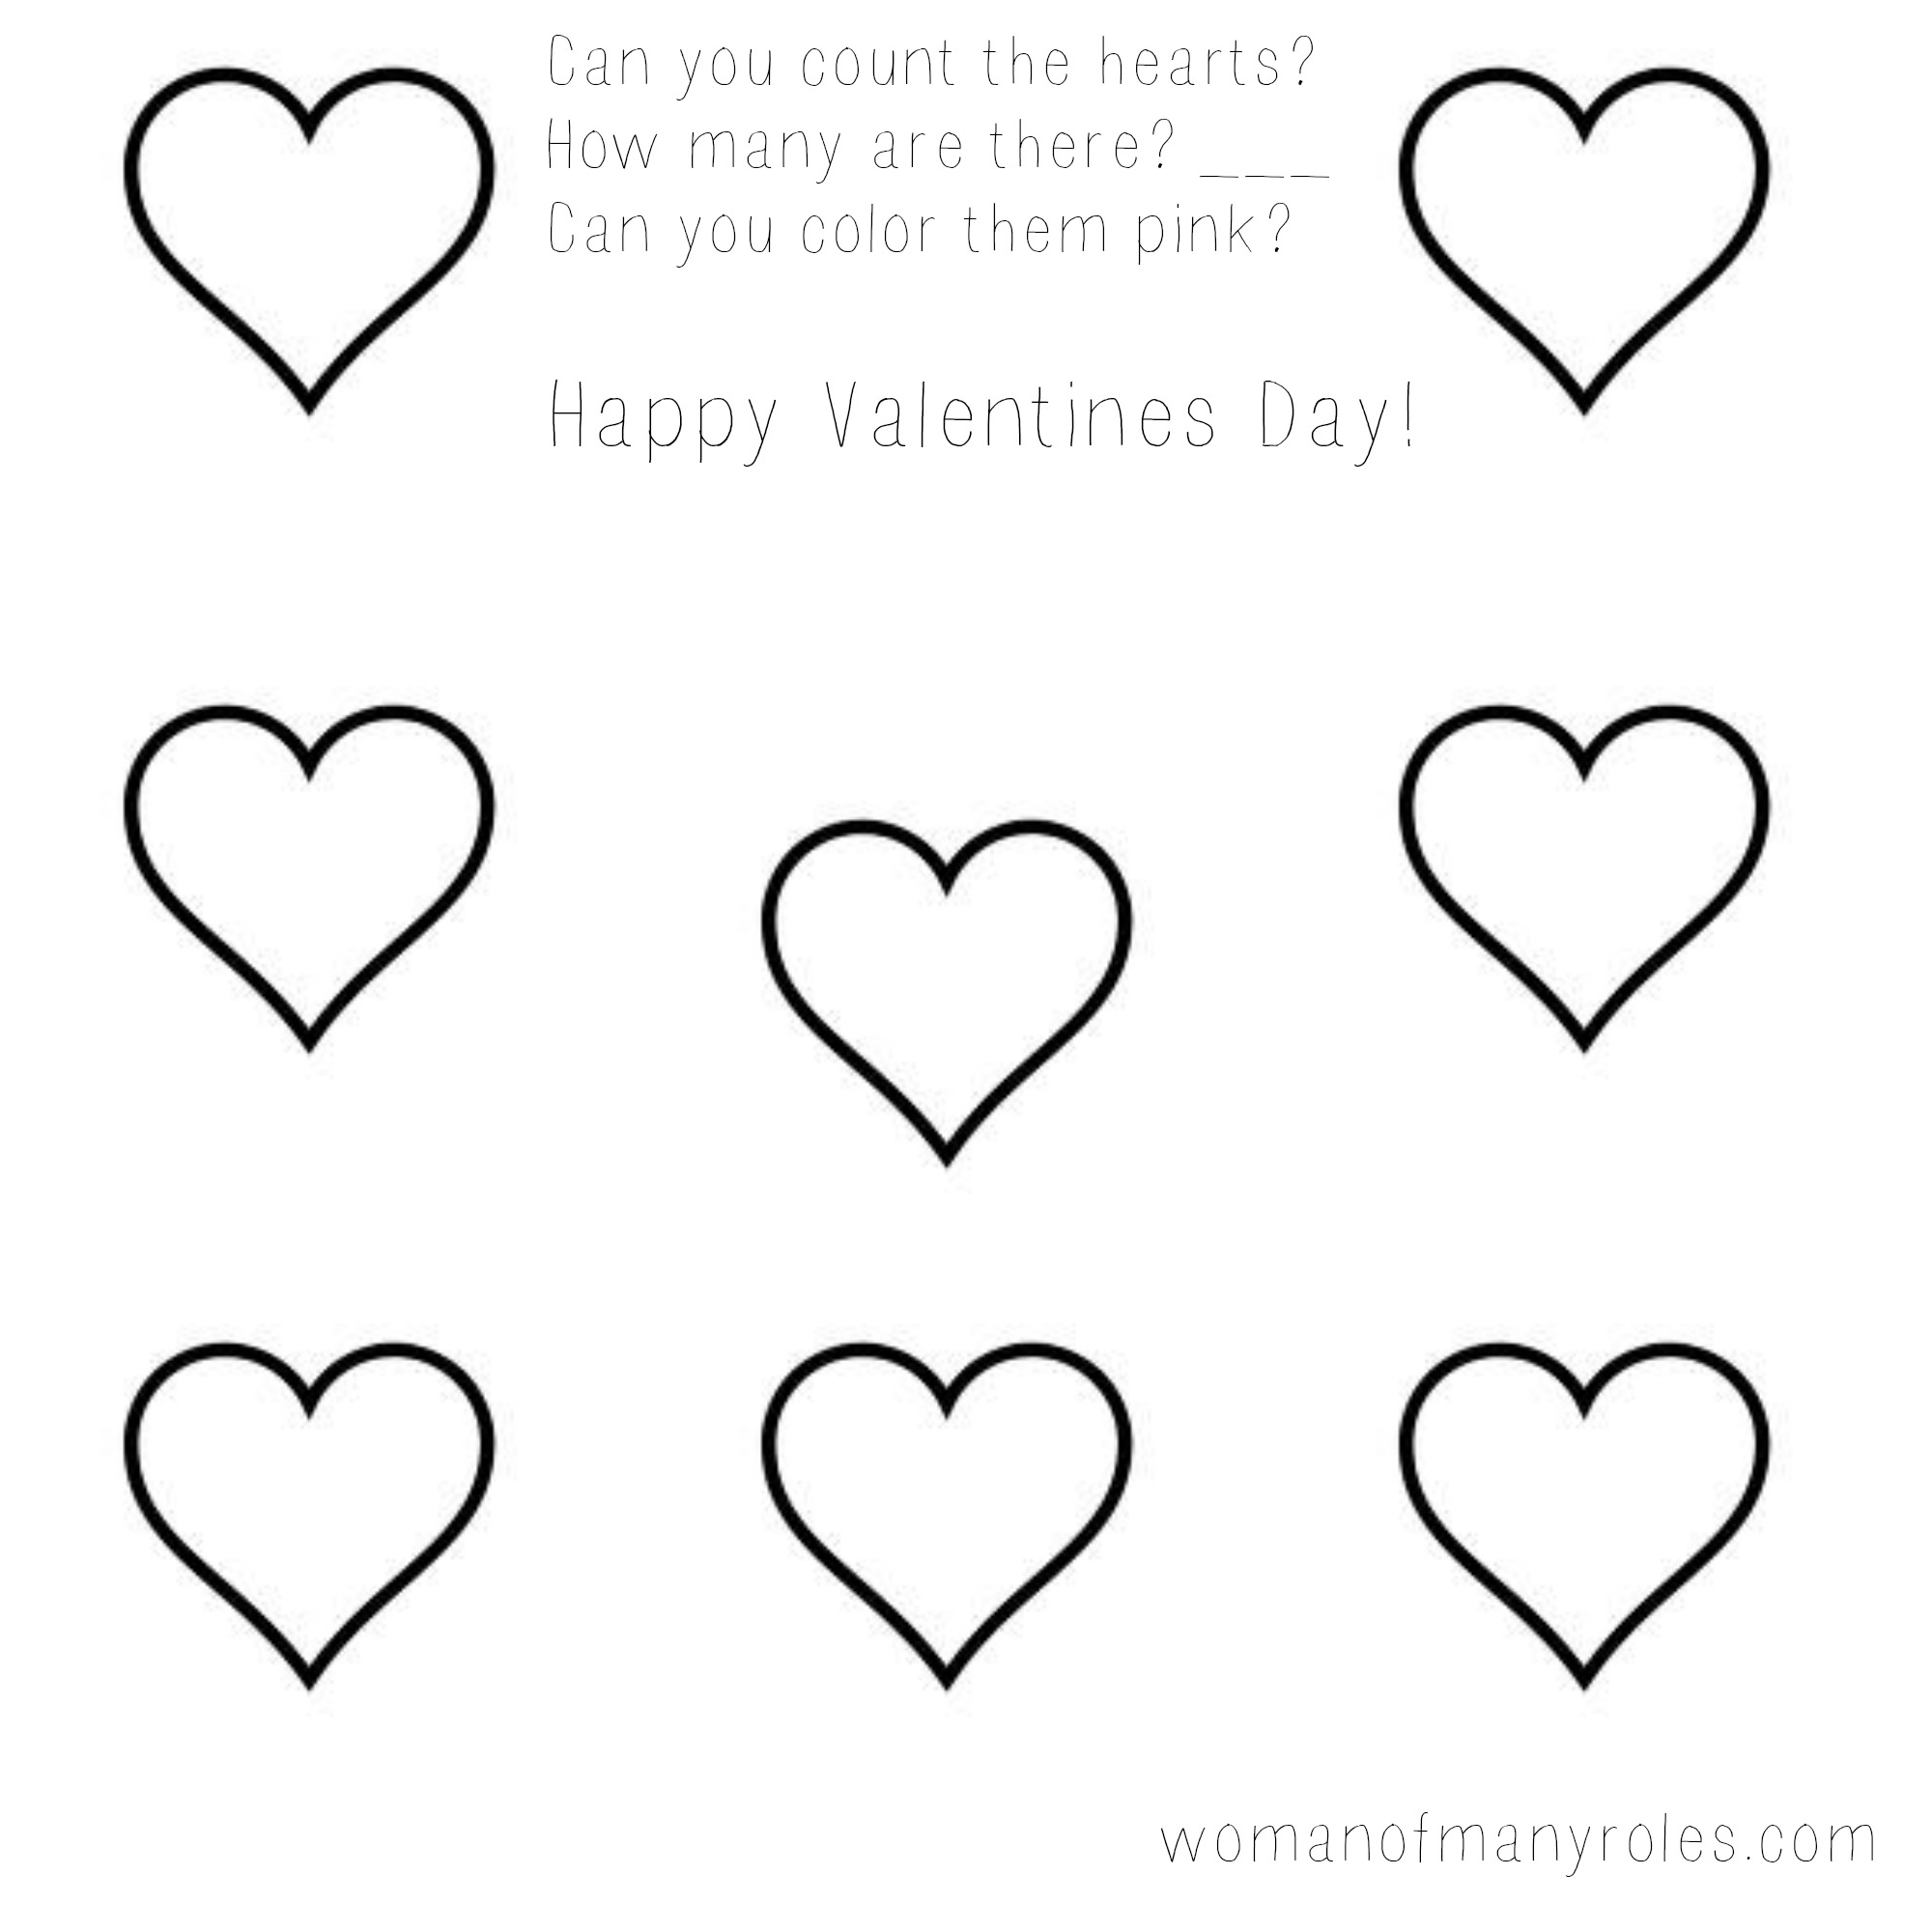 Preschool Valentine Printable Worksheets That Are Dramatic